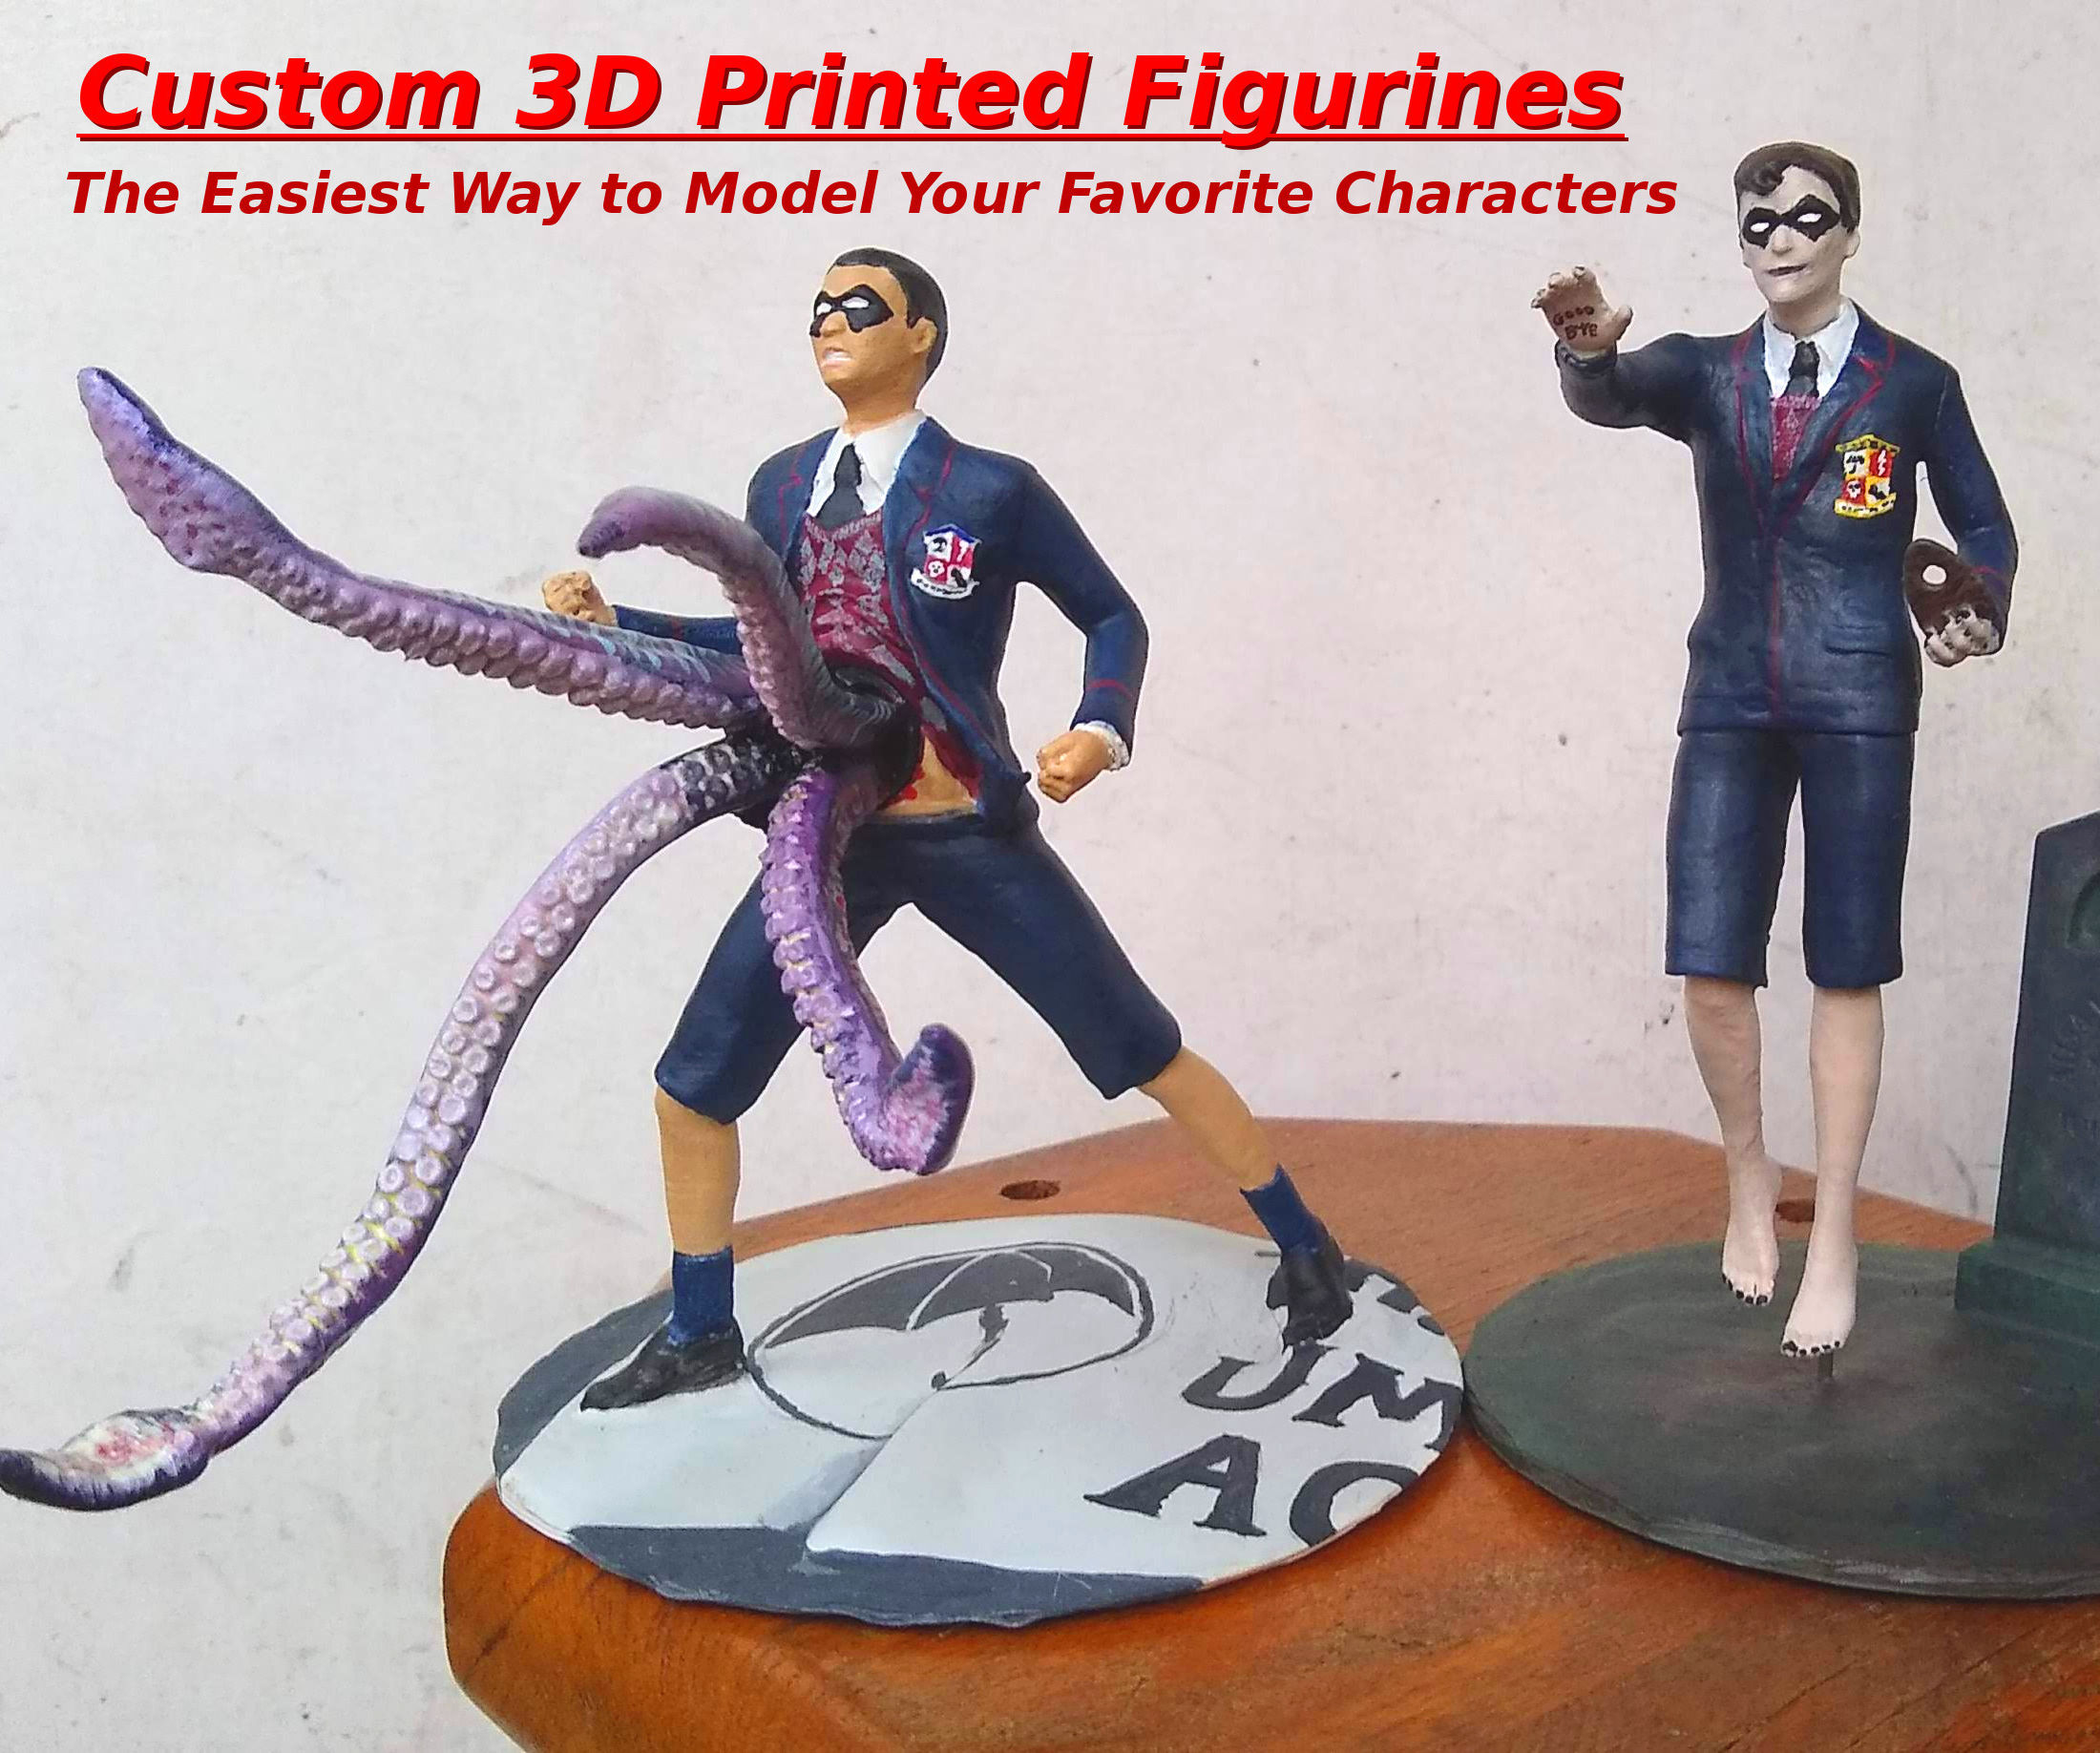 Custom Figurines: Modeling and Printing Your Favorite Characters